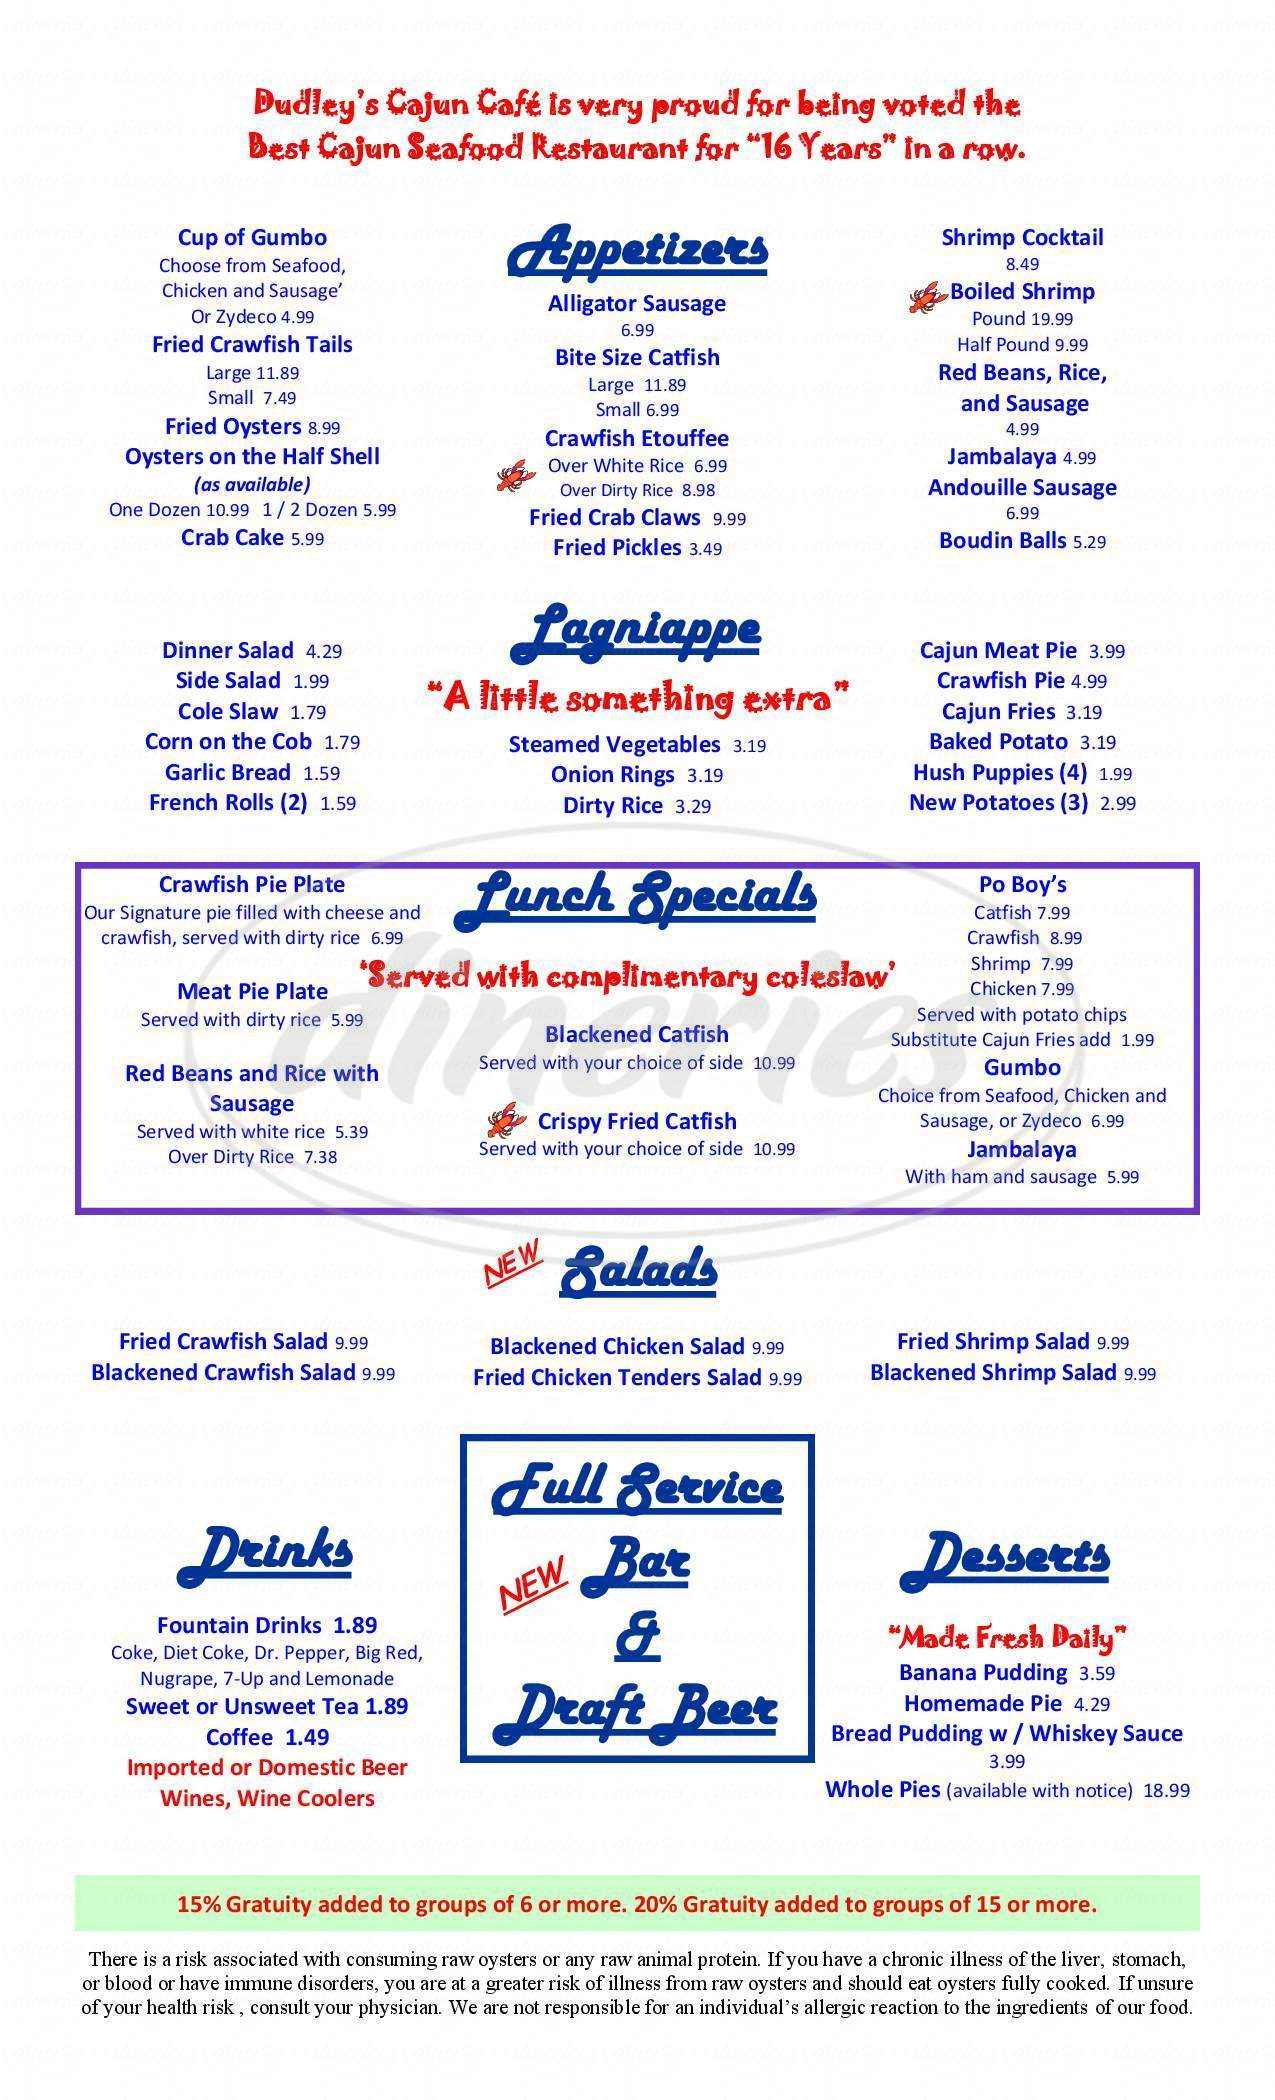 menu for Dudley's Cajun Cafe